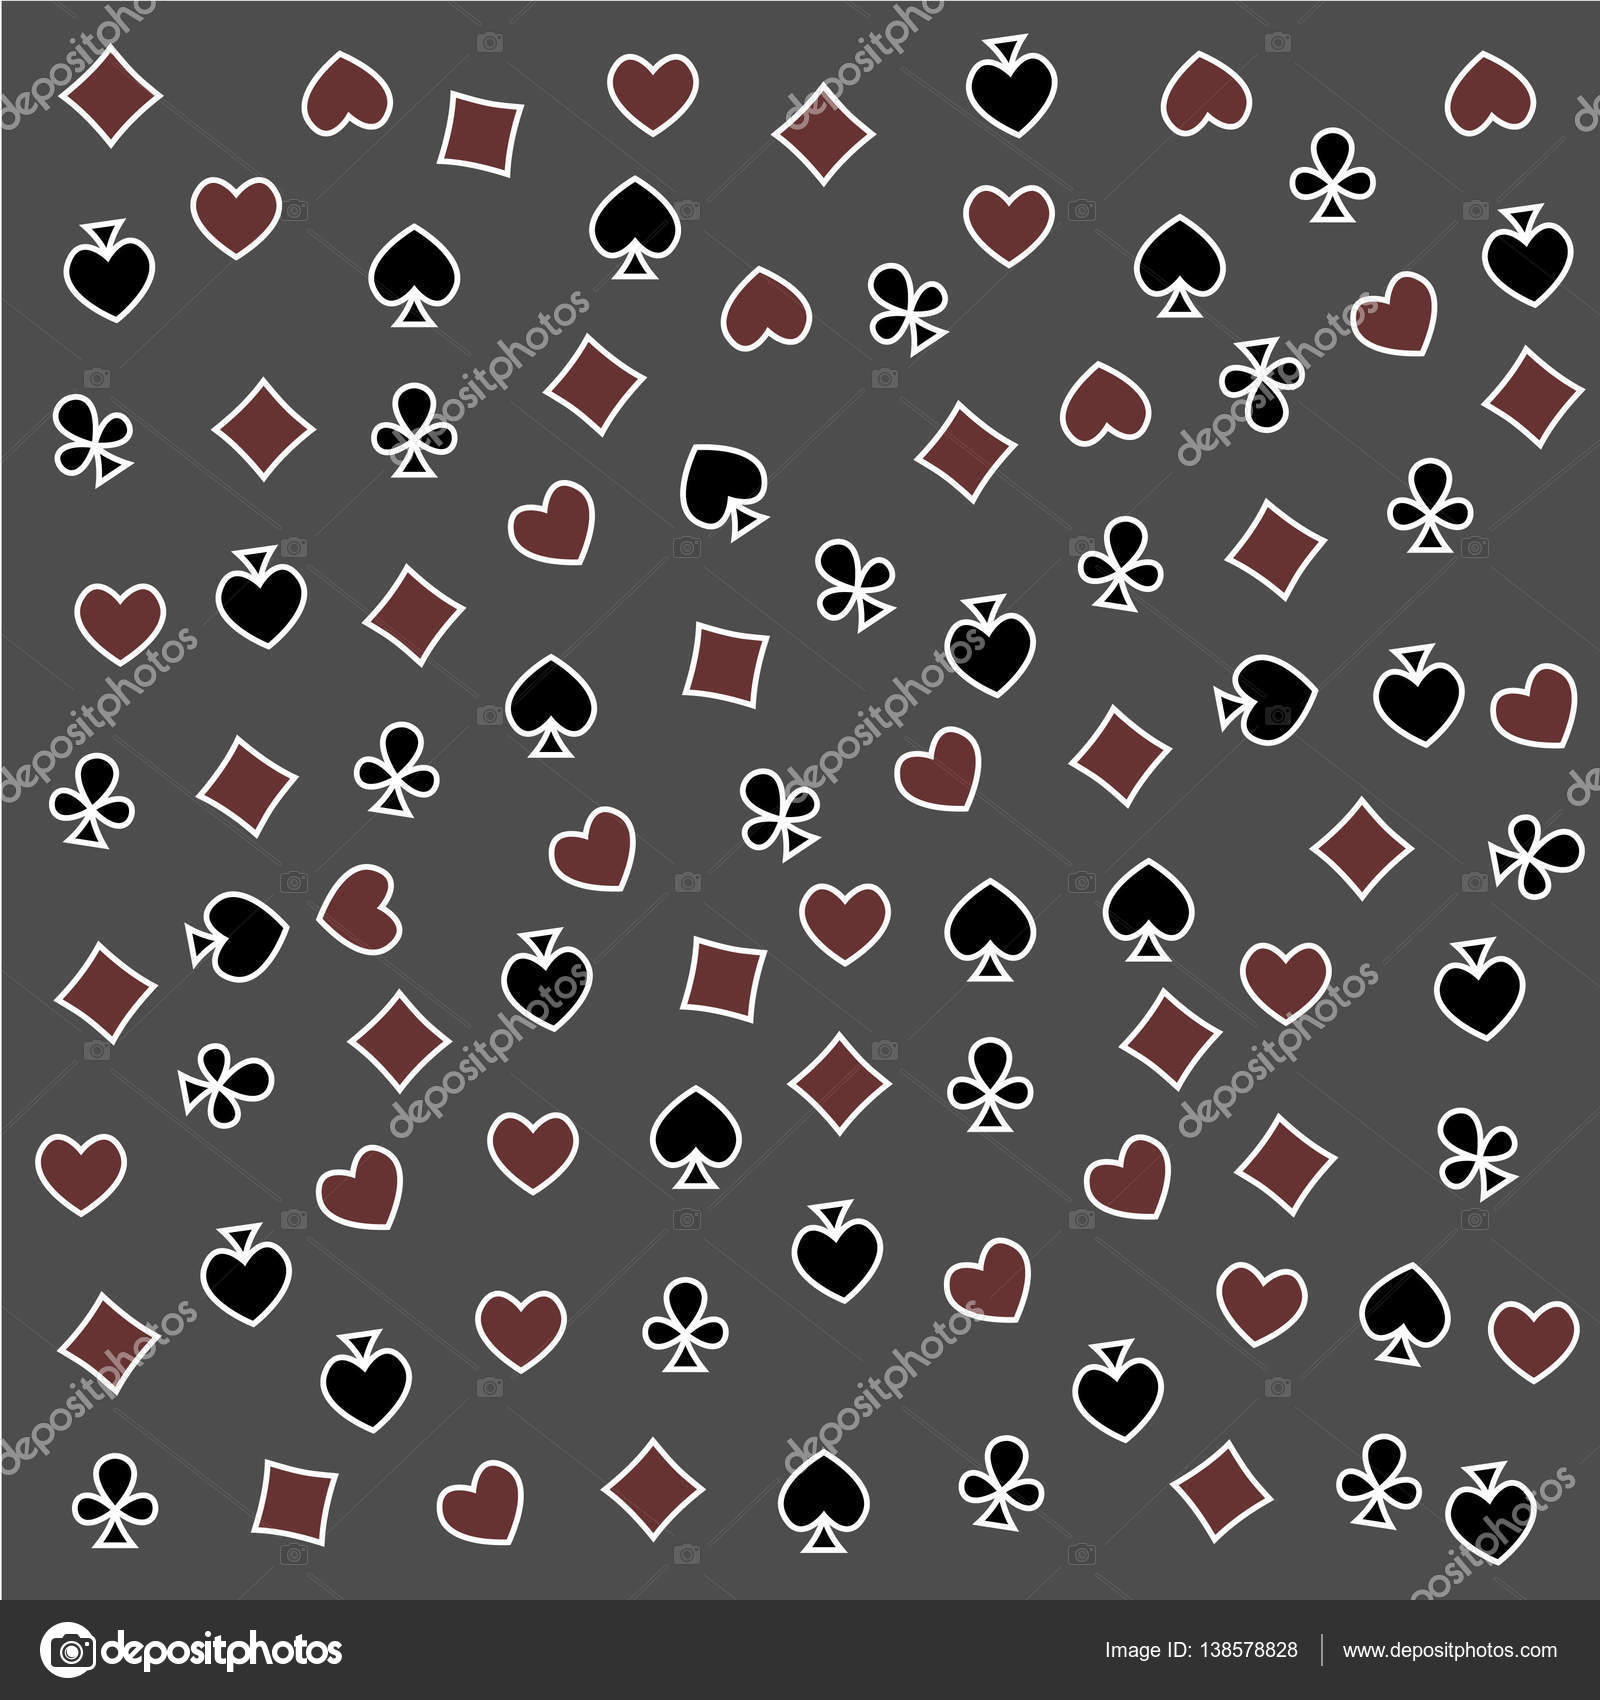 The seamless pattern made out of casino symbols stock photo the seamless pattern made out of casino symbols heart diamond spade and clubs background the casino symbols background photo by truman43 biocorpaavc Gallery